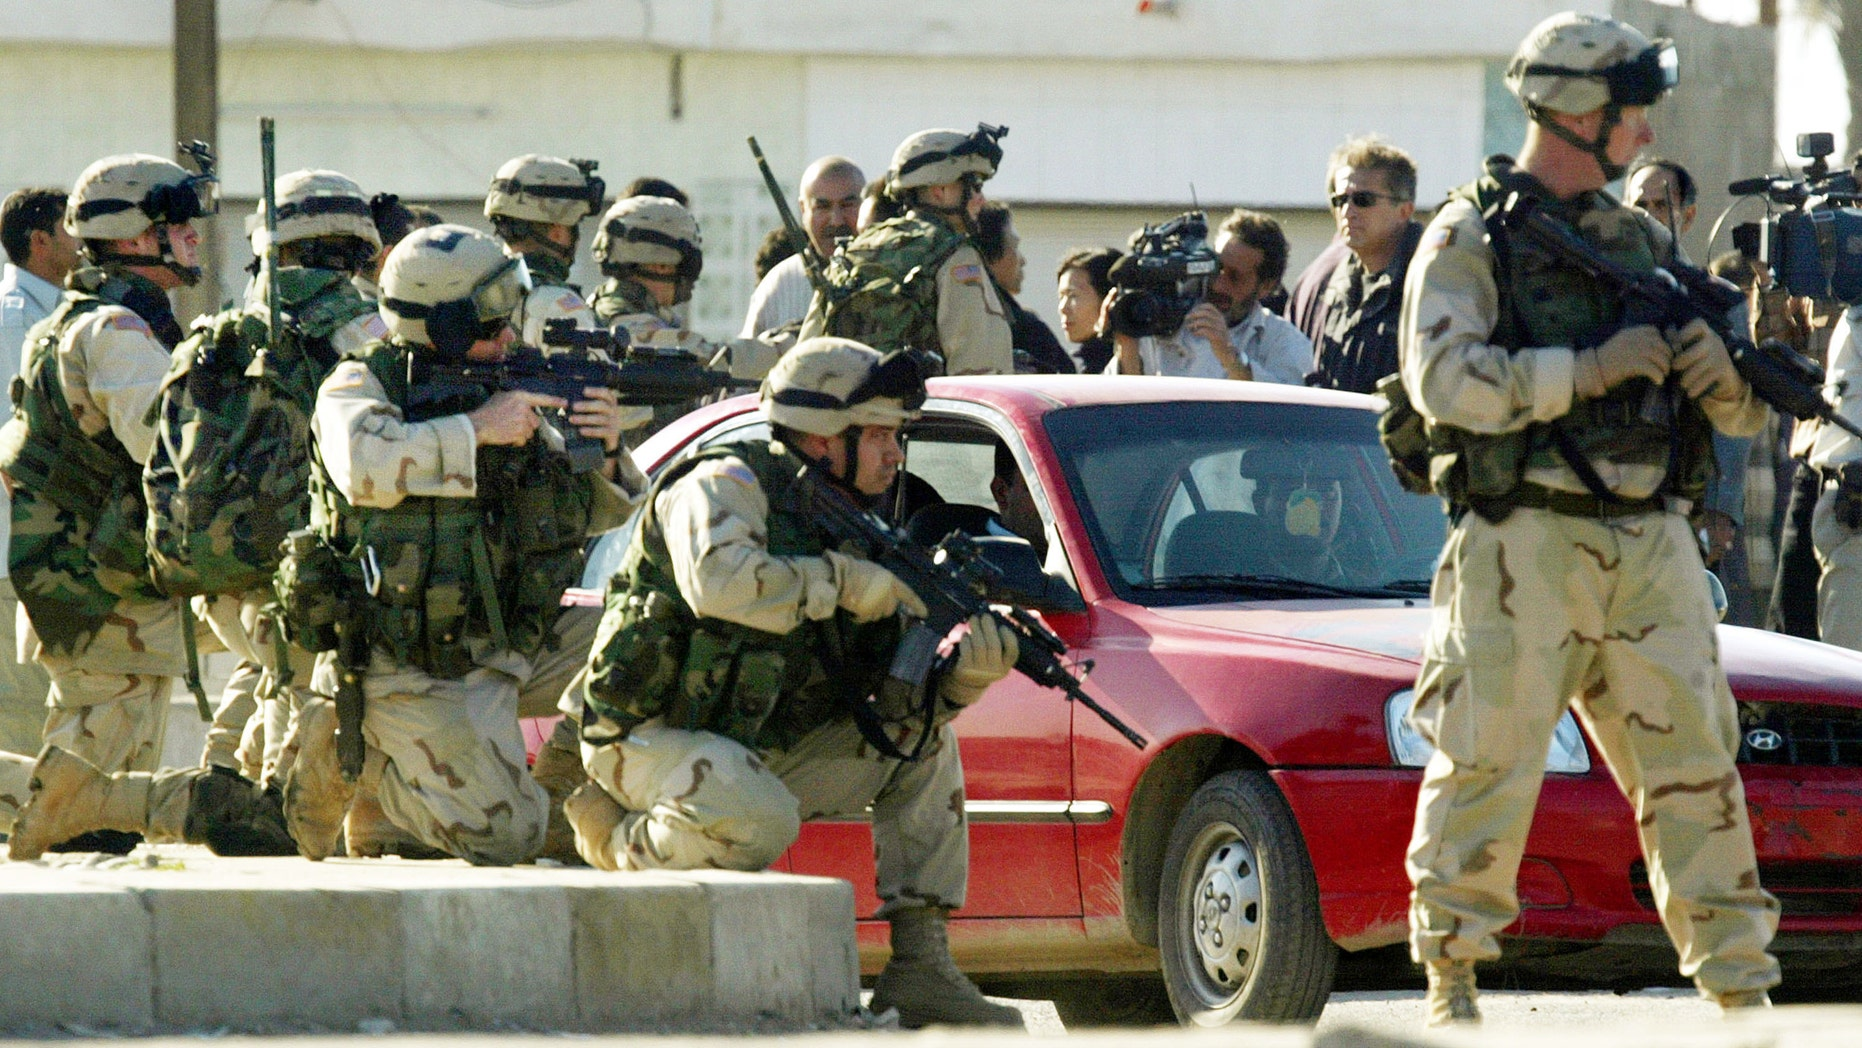 U.S. soldiers aim their rifles during a tense demonstration after a suicide car bomb exploded killing at least 50 people in Iraq.